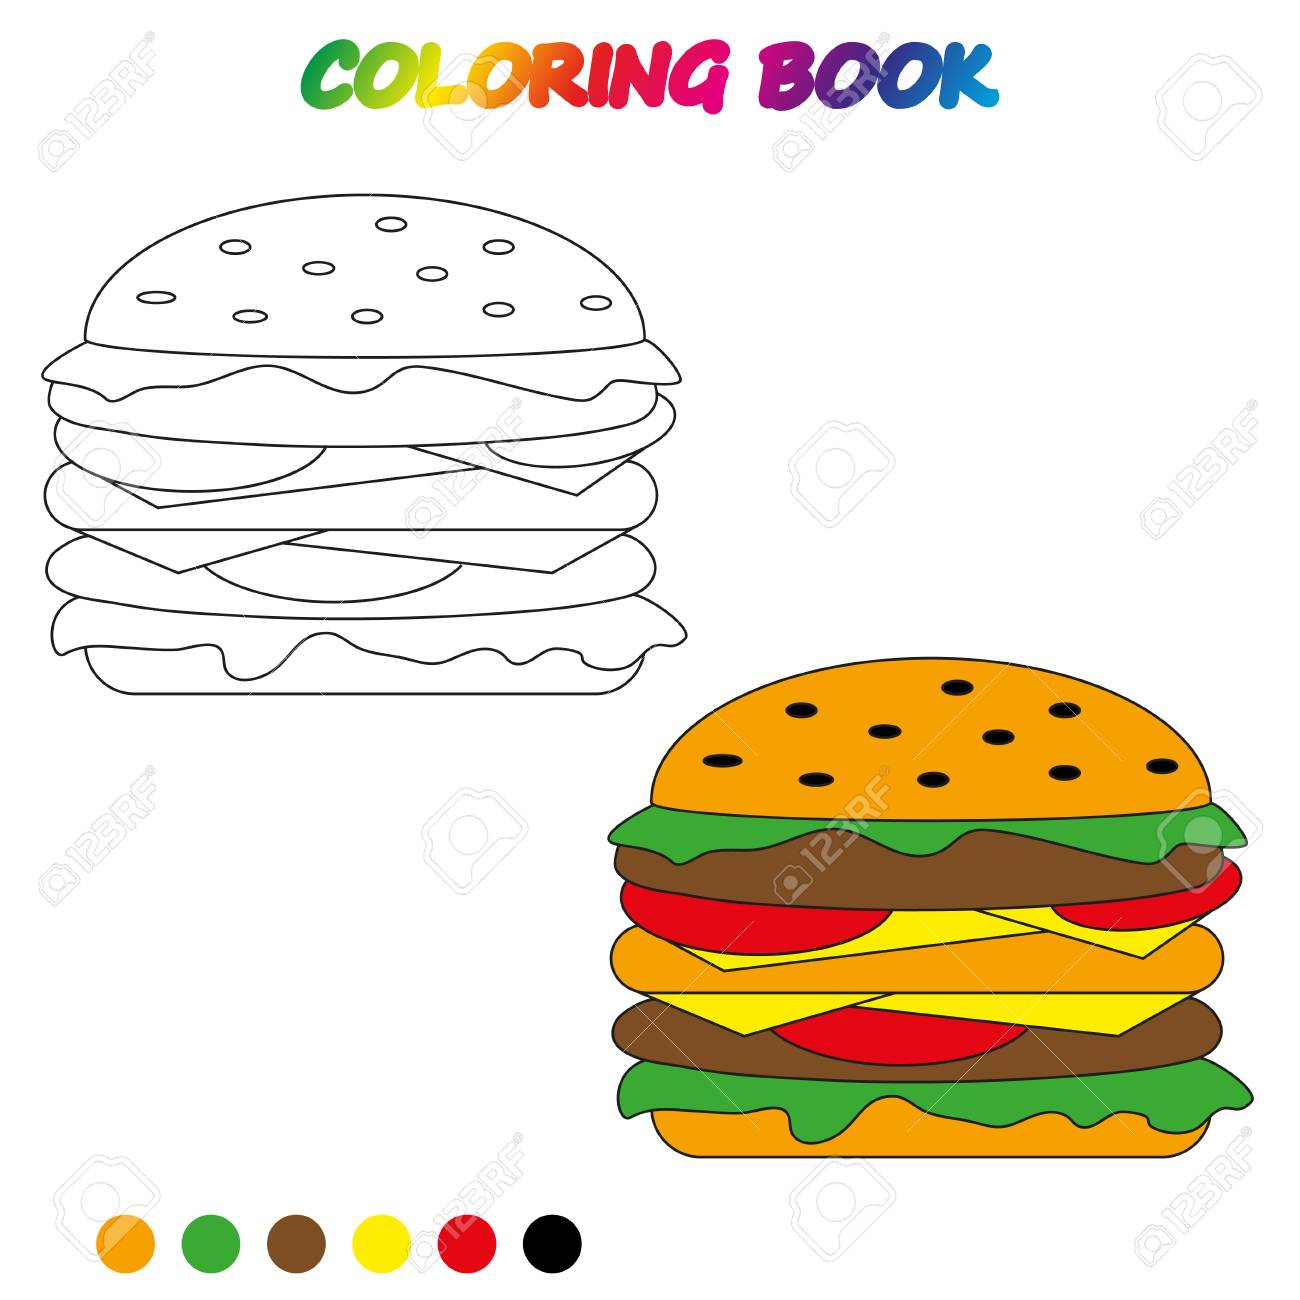 Hamburger Coloring Book Coloring Page To Educate Preschool